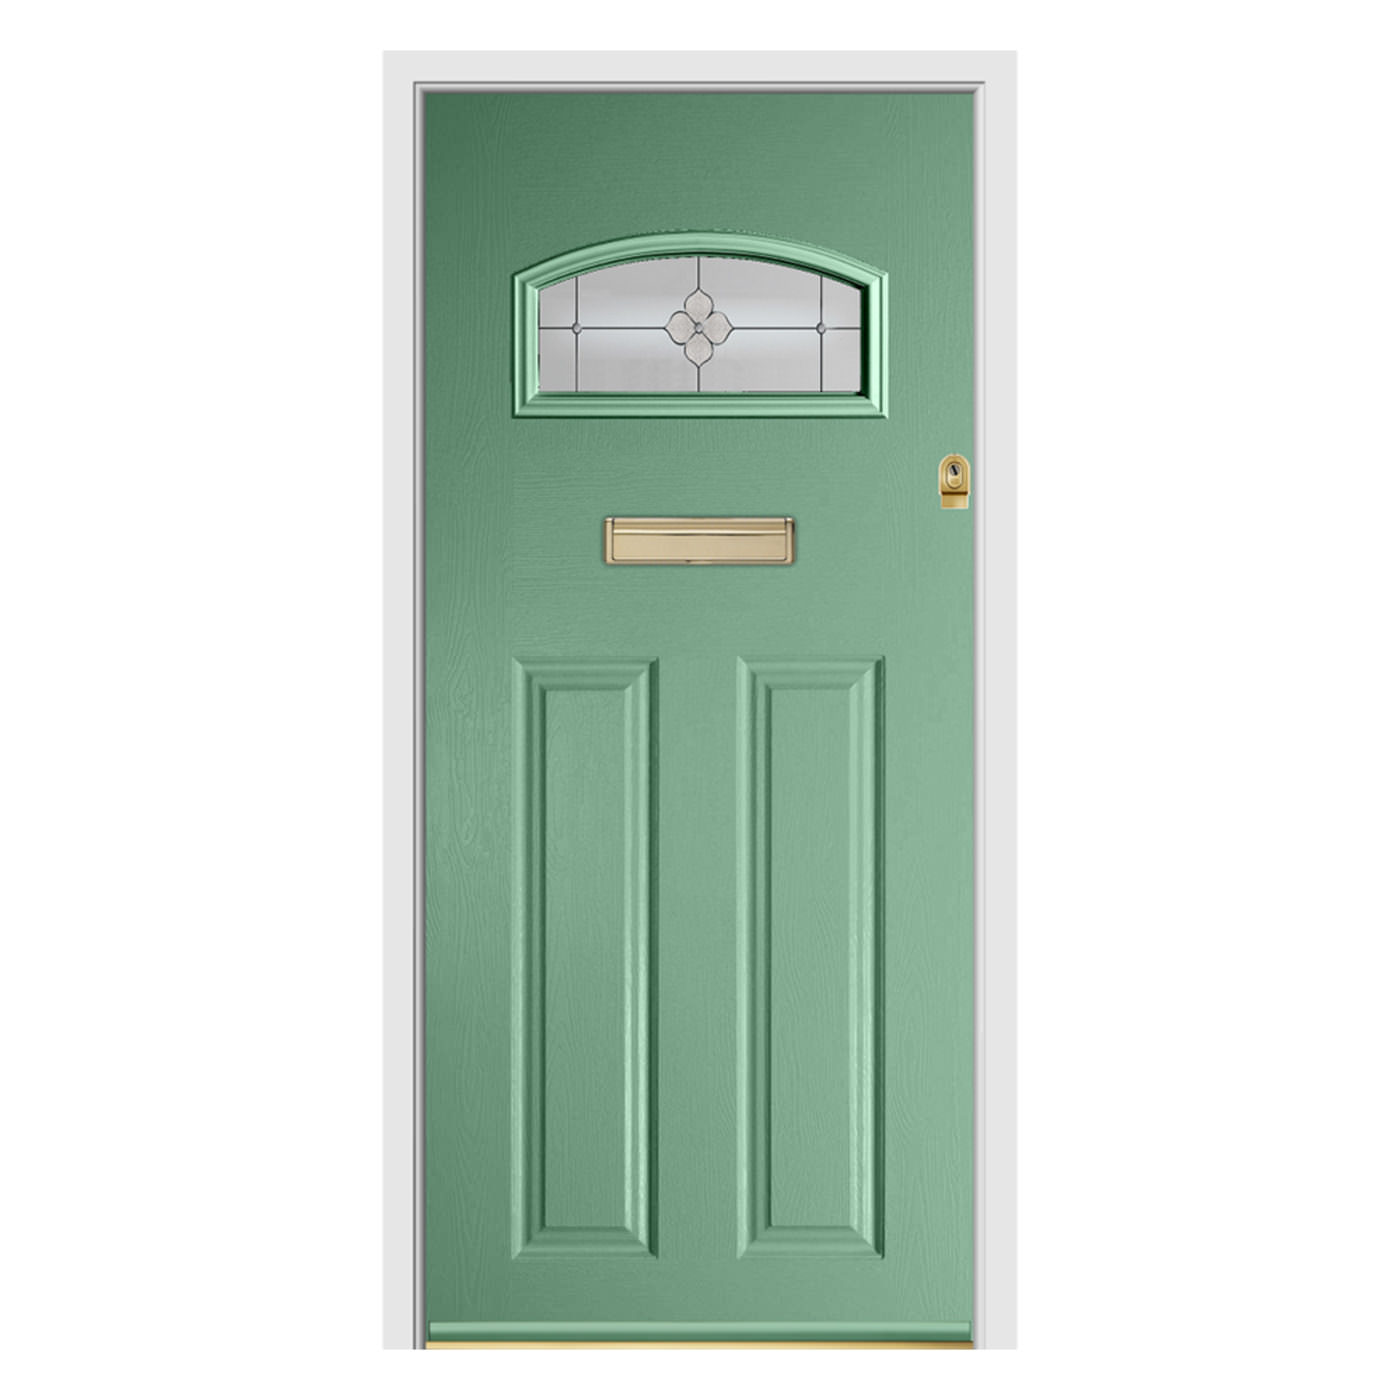 1930s style front doors your guide endurance for Back door styles